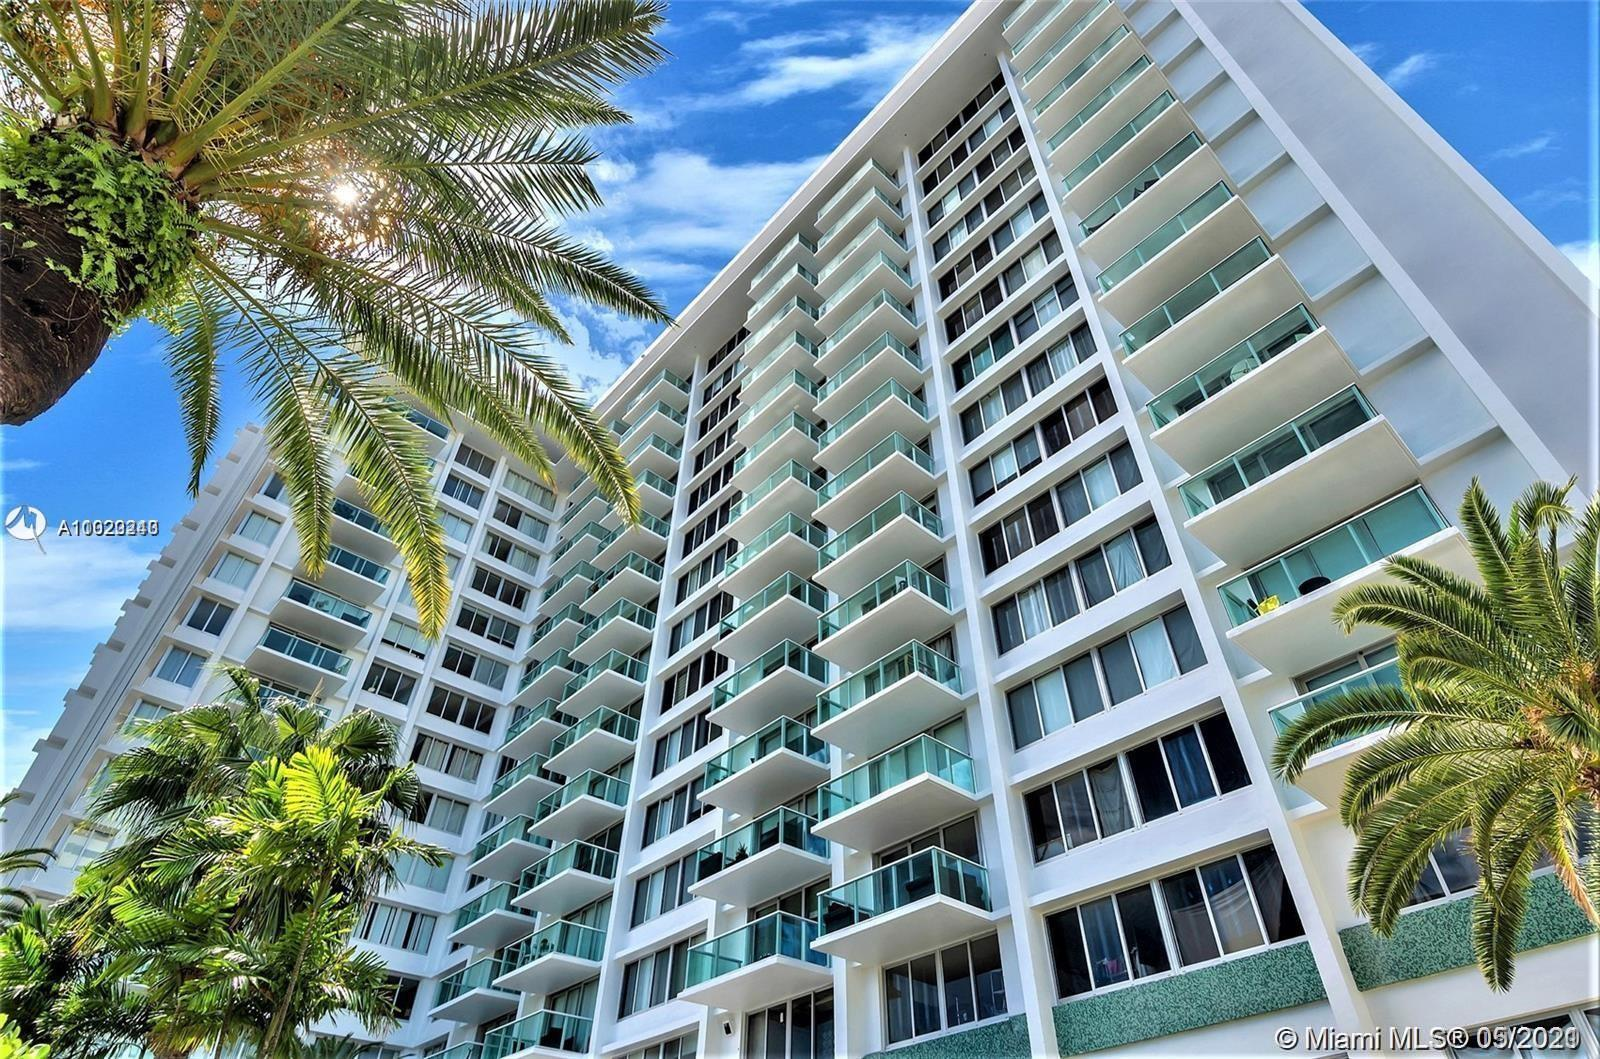 Mirador South #703 - 1000 West Ave #703, Miami Beach, FL 33139